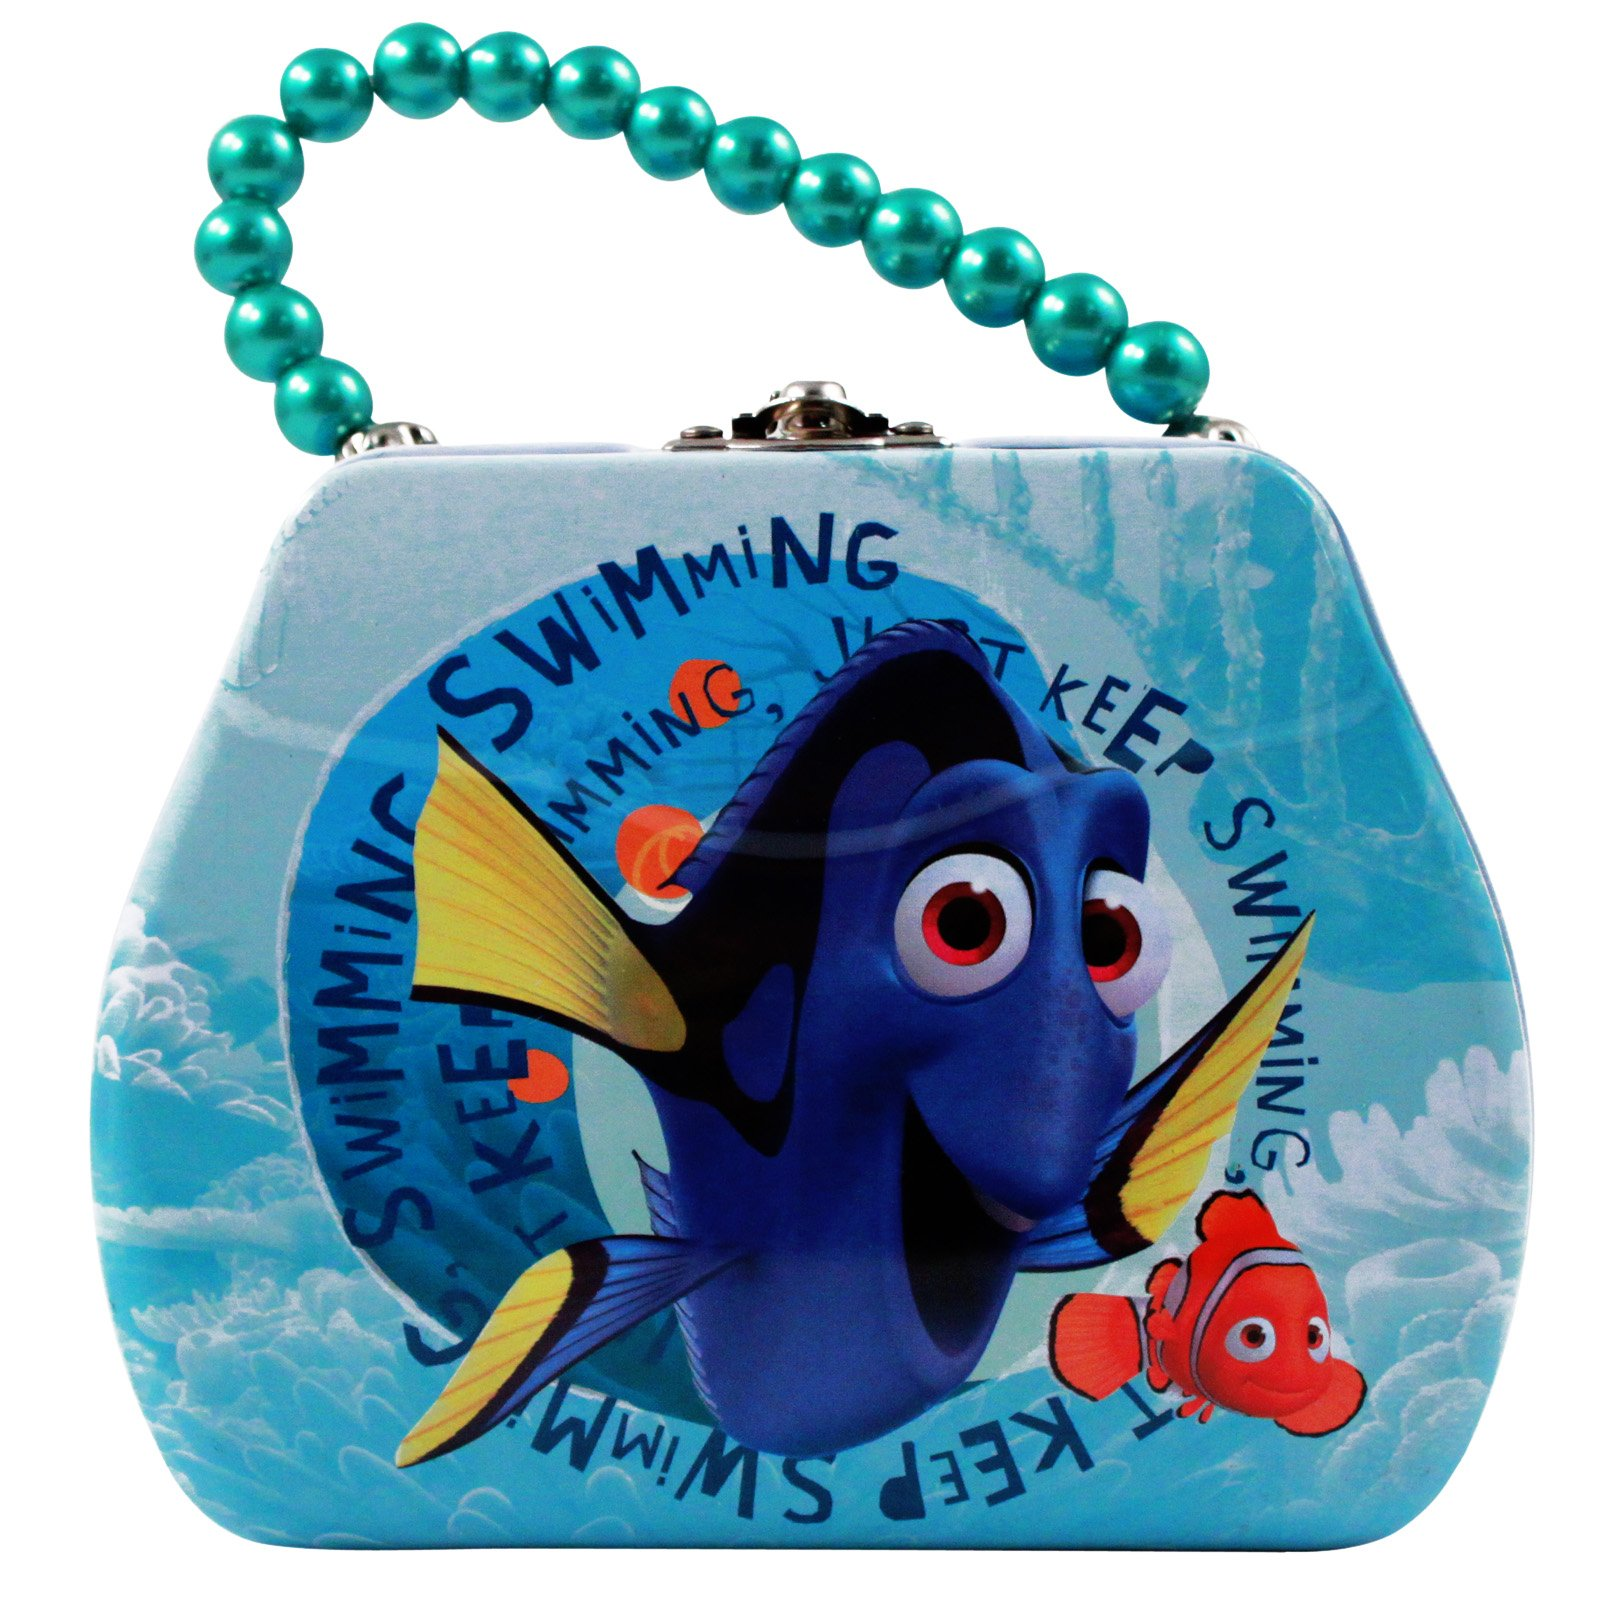 Disney Pixar Finding Dory Collectible Kids Tin Purse